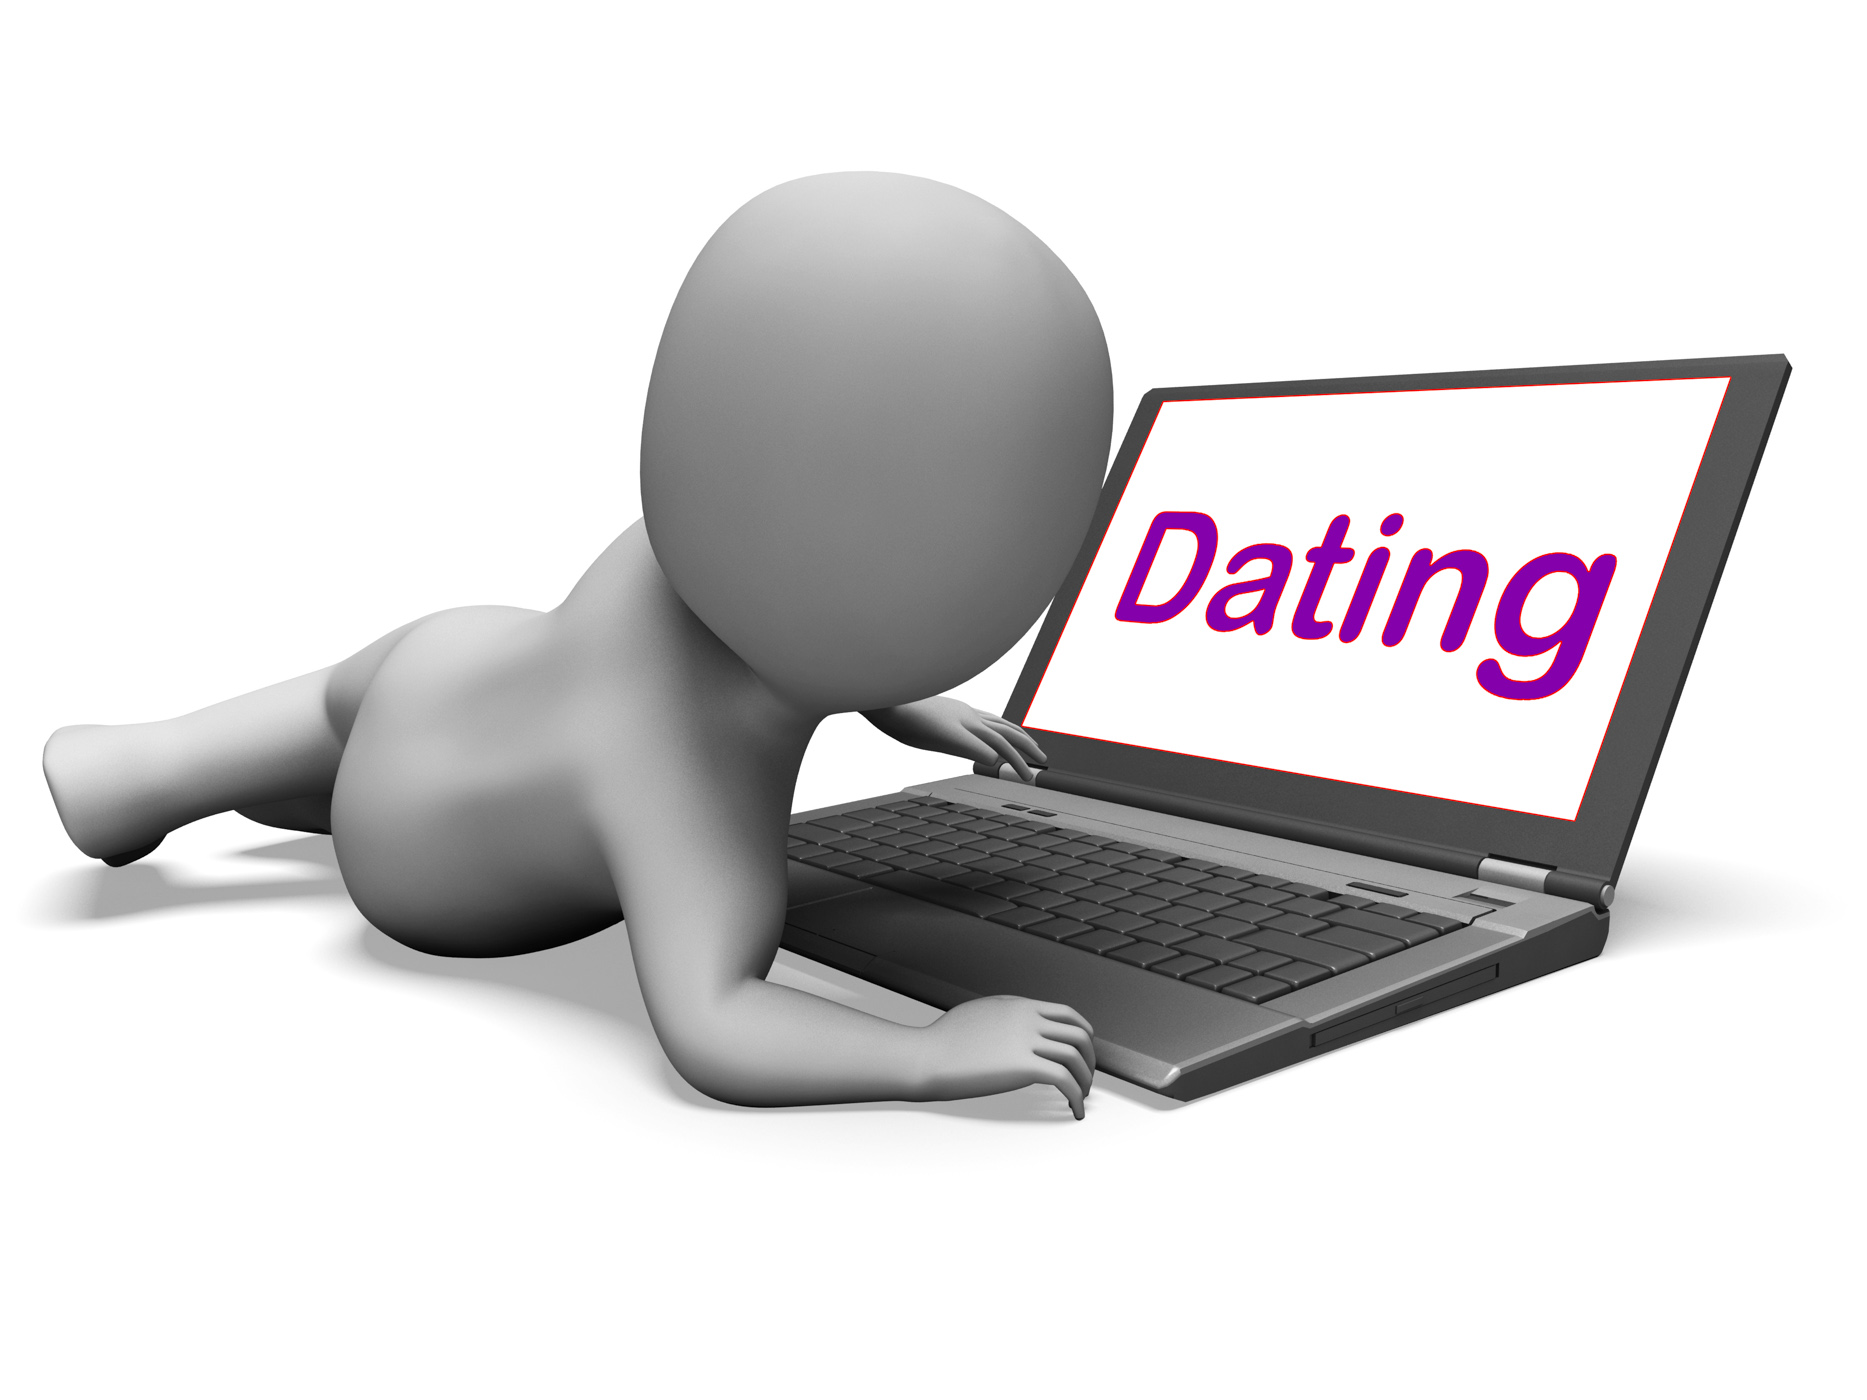 Online Dating Character Laptop Shows Romance And Web Love, Partner, Web, Virtual, Sweetheart, HQ Photo